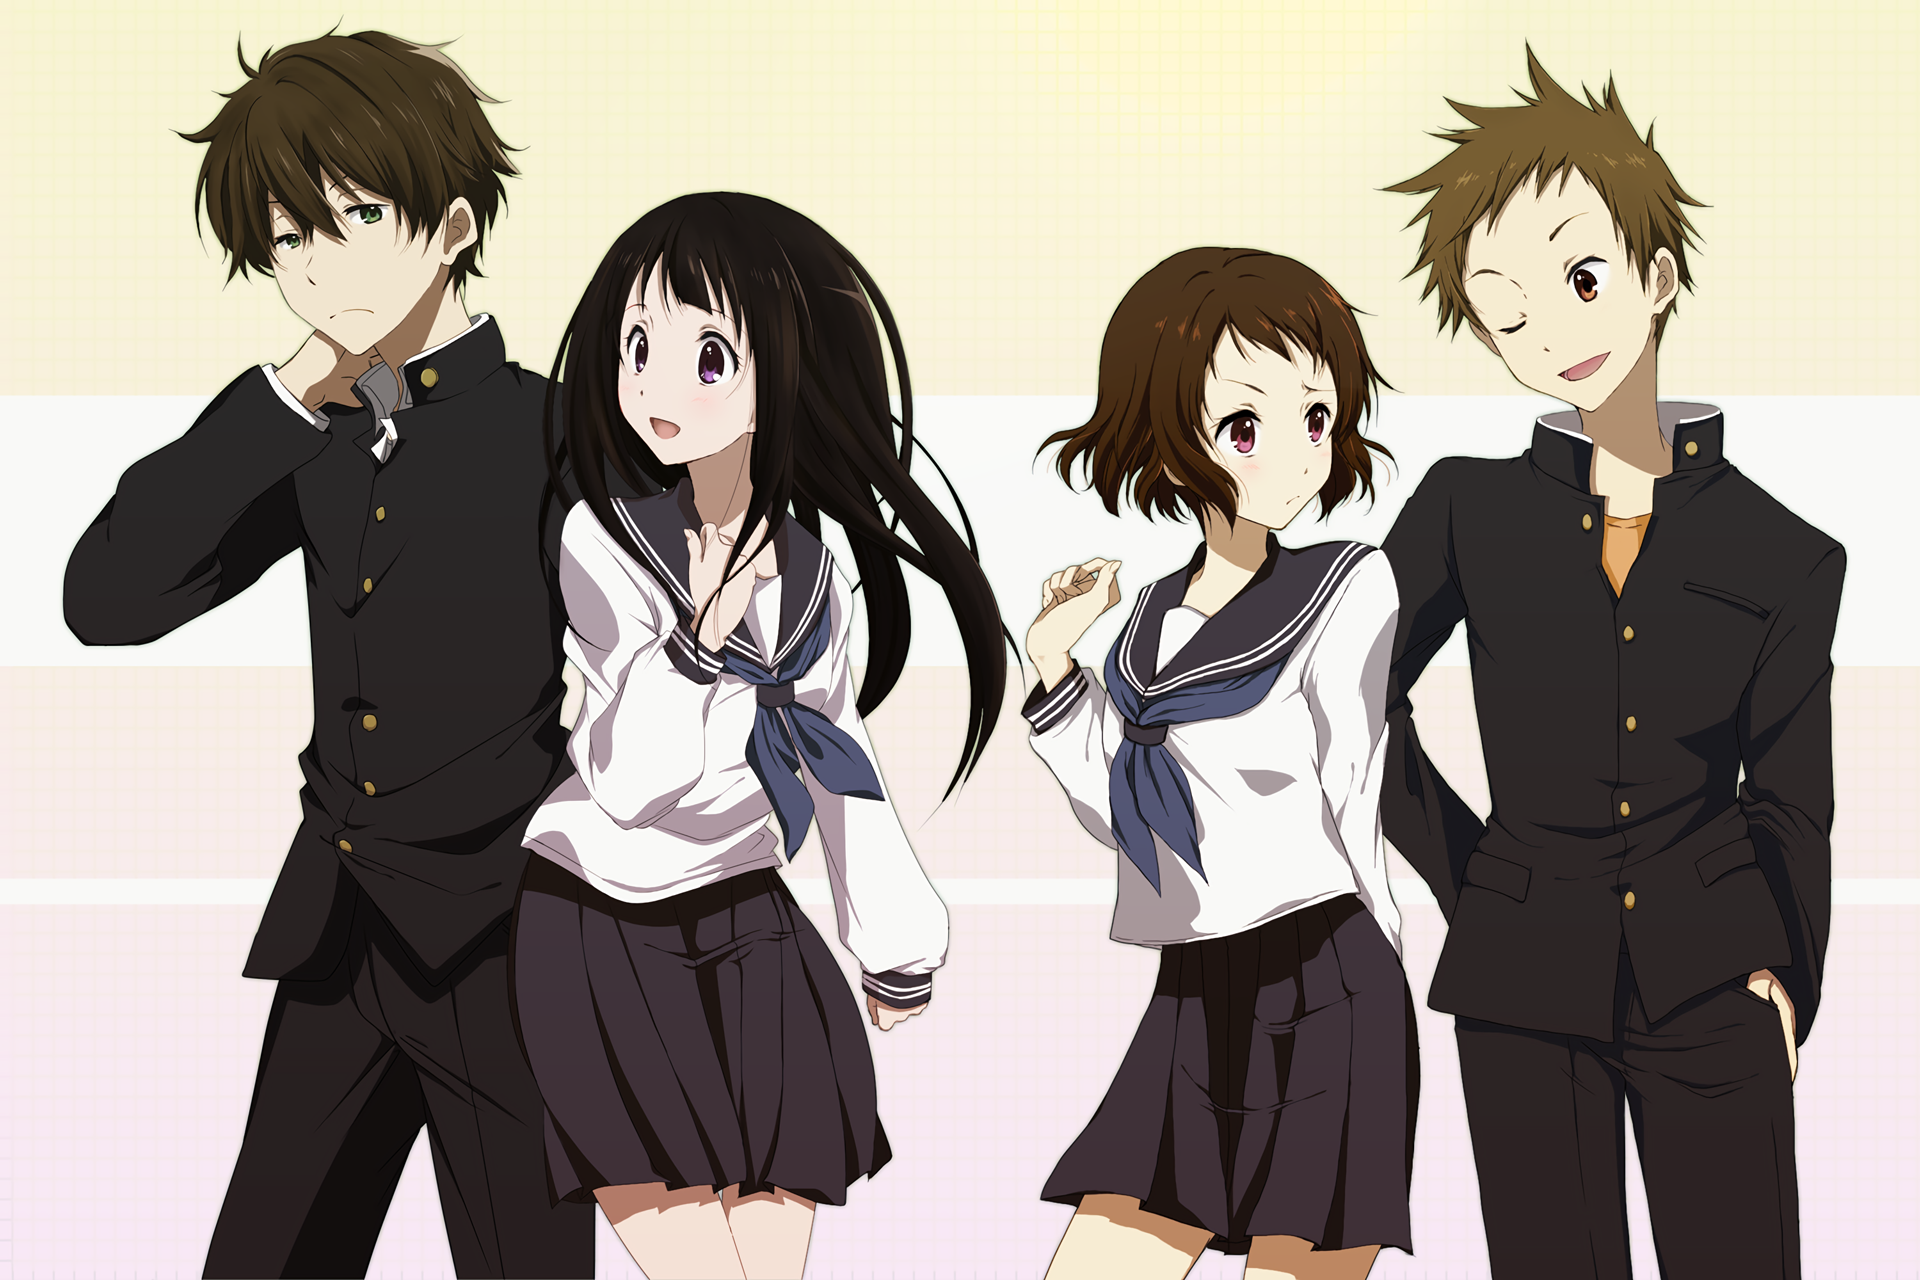 Oresama Teacher Wallpaper Anime - Hyouka Mayaka ...